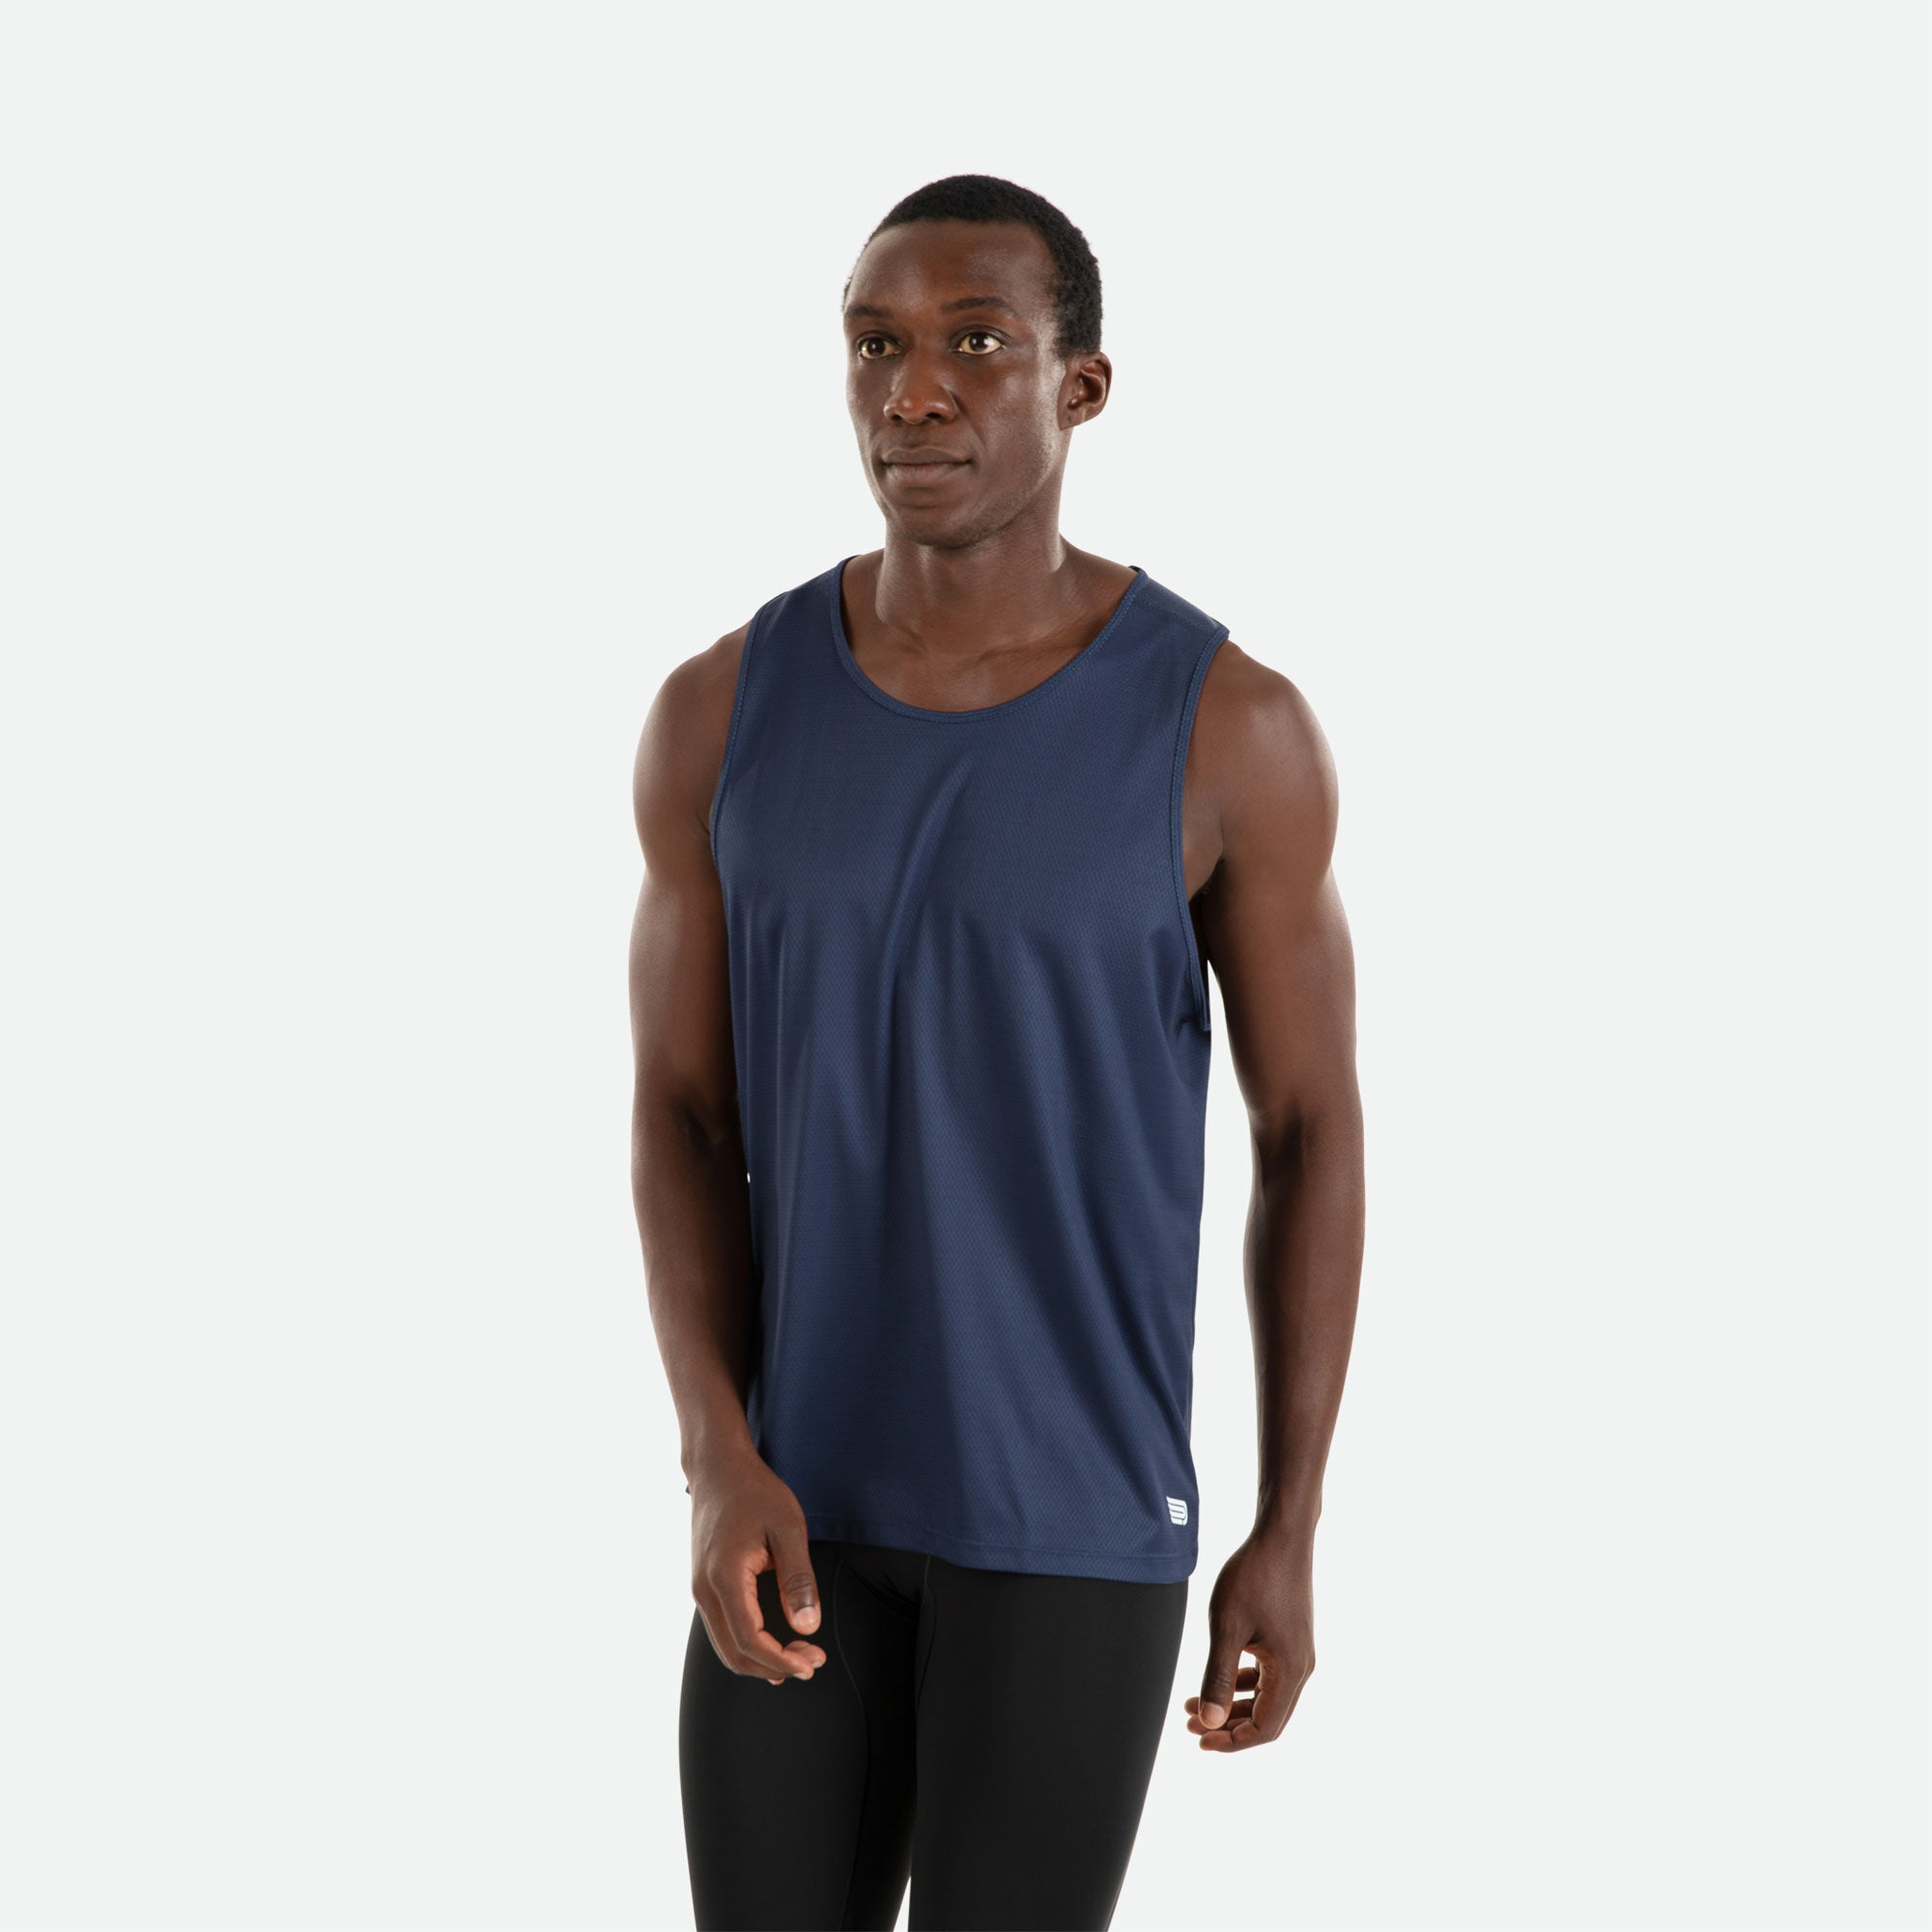 Our Pressio men's navy Hāpai singlet features EcoTECH MF fabric which has dual filament recycled polyester yarns from Unifi for superior moisture control to keep you dry.